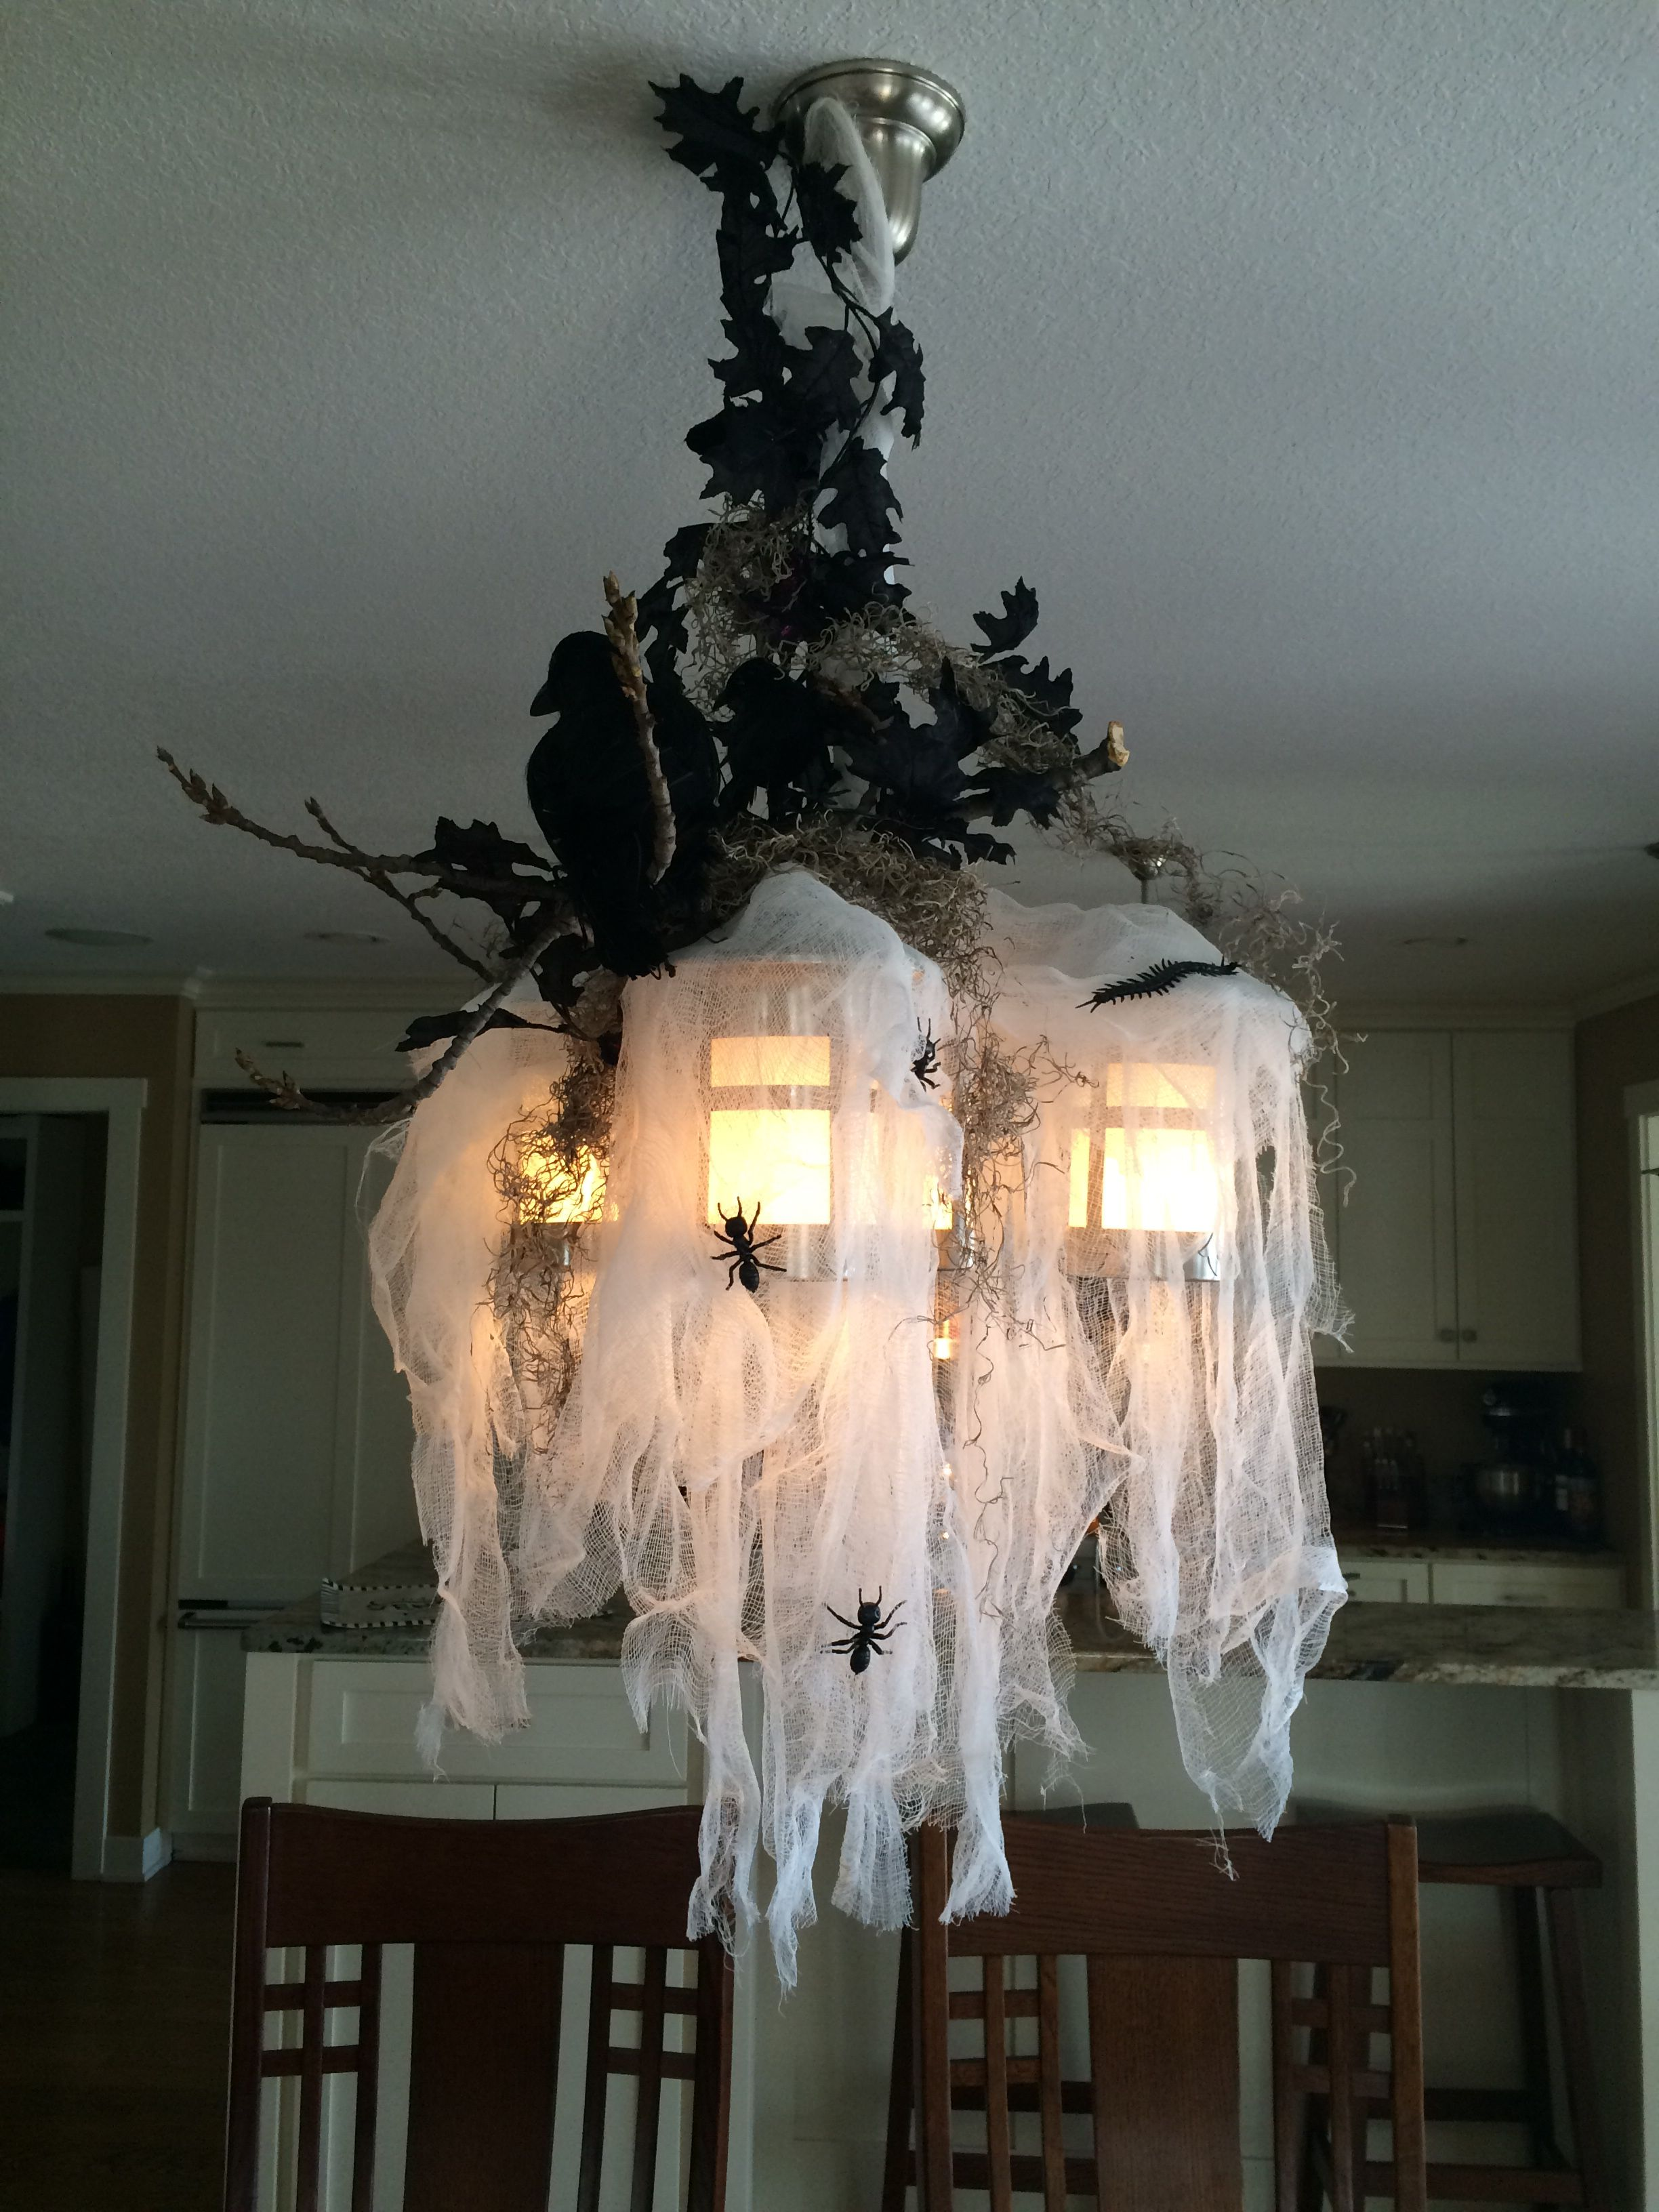 Spanish moss for crafts - Cheesecloth Spanish Moss Dollar Store Ants Last Years Clearance Birds From Michaels And